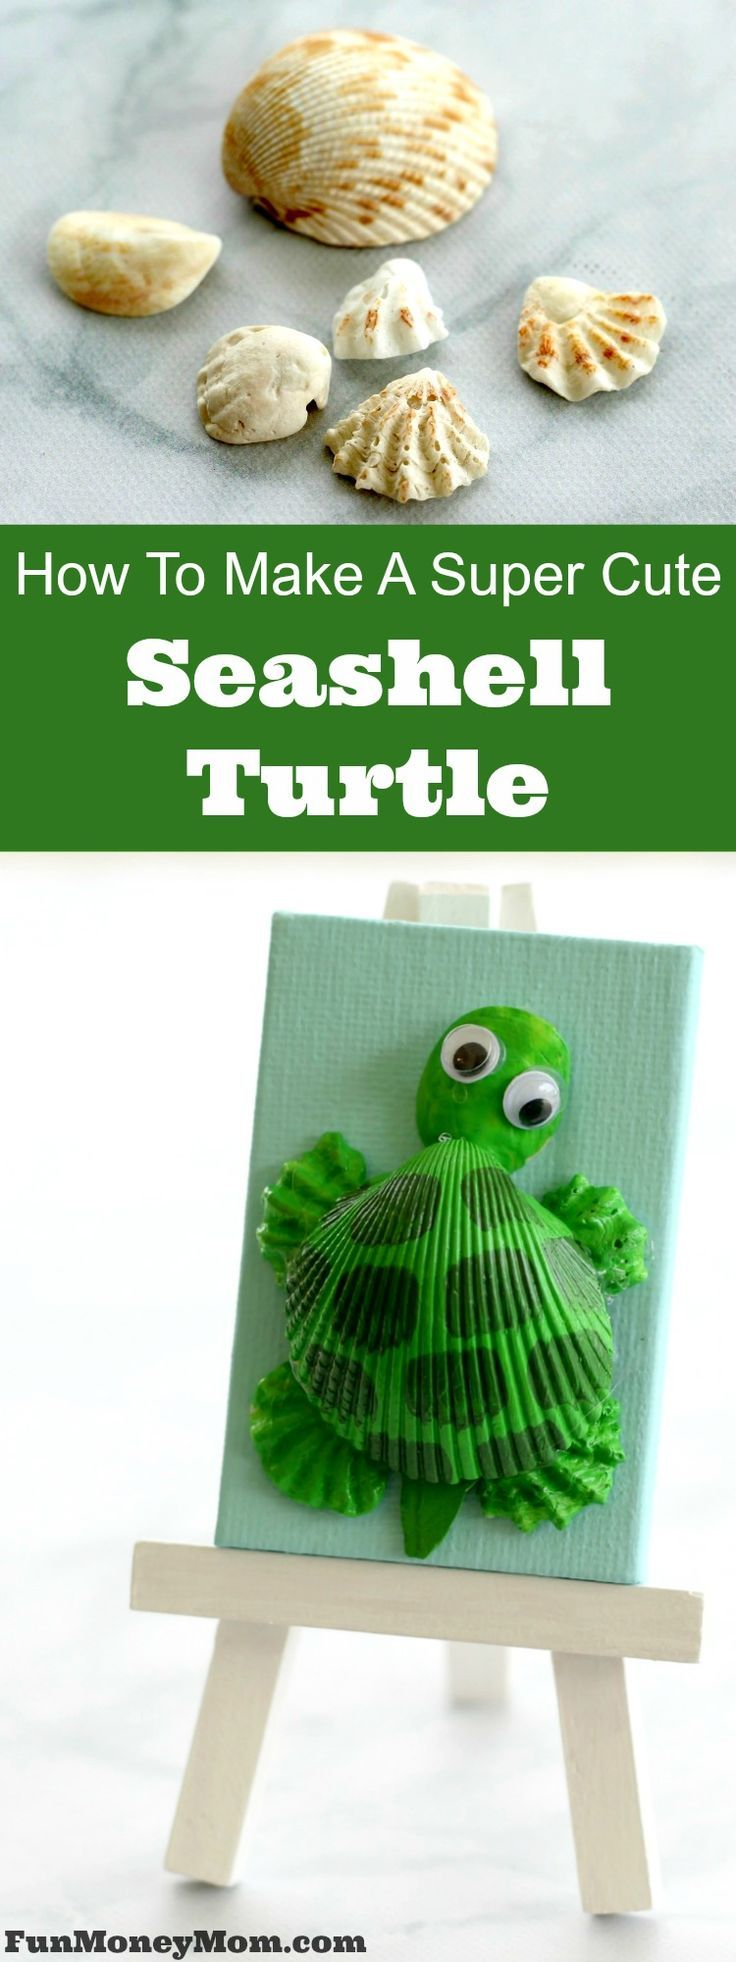 How To Make A Super Cute Seashell Turtle